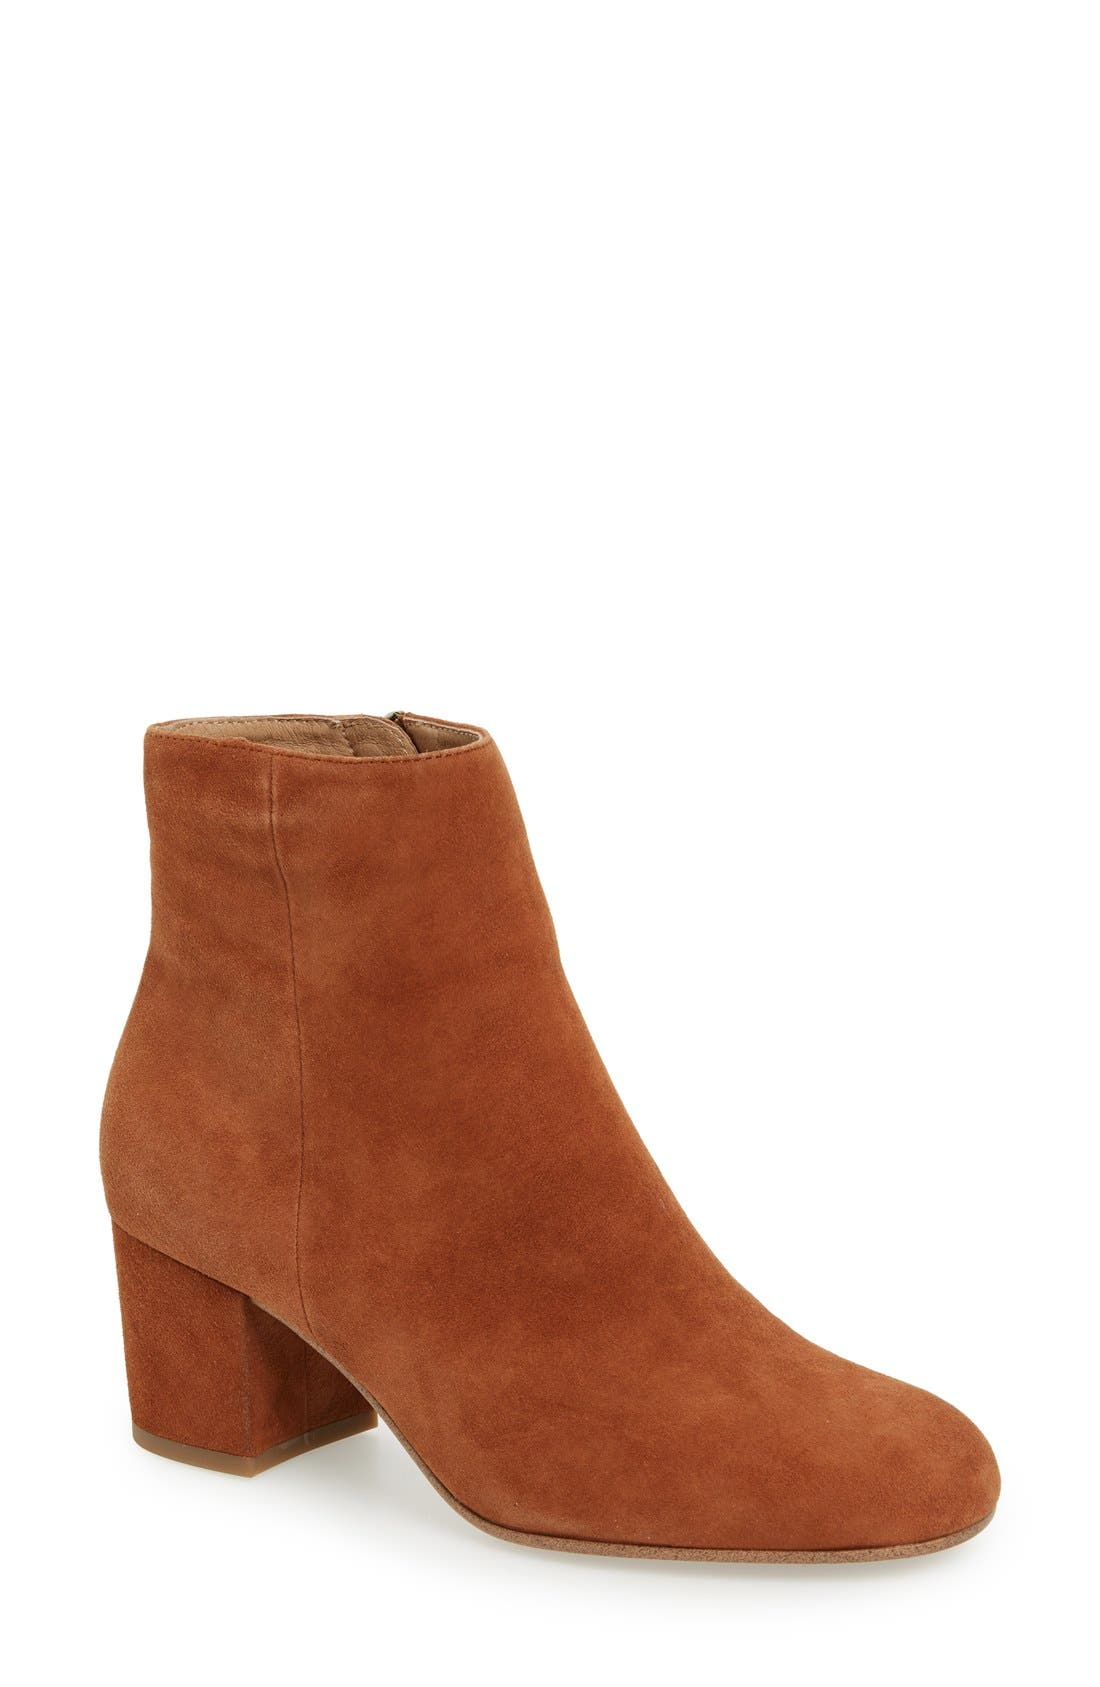 Alternate Image 1 Selected - Halogen® 'Cori' Round Toe Bootie (Women)